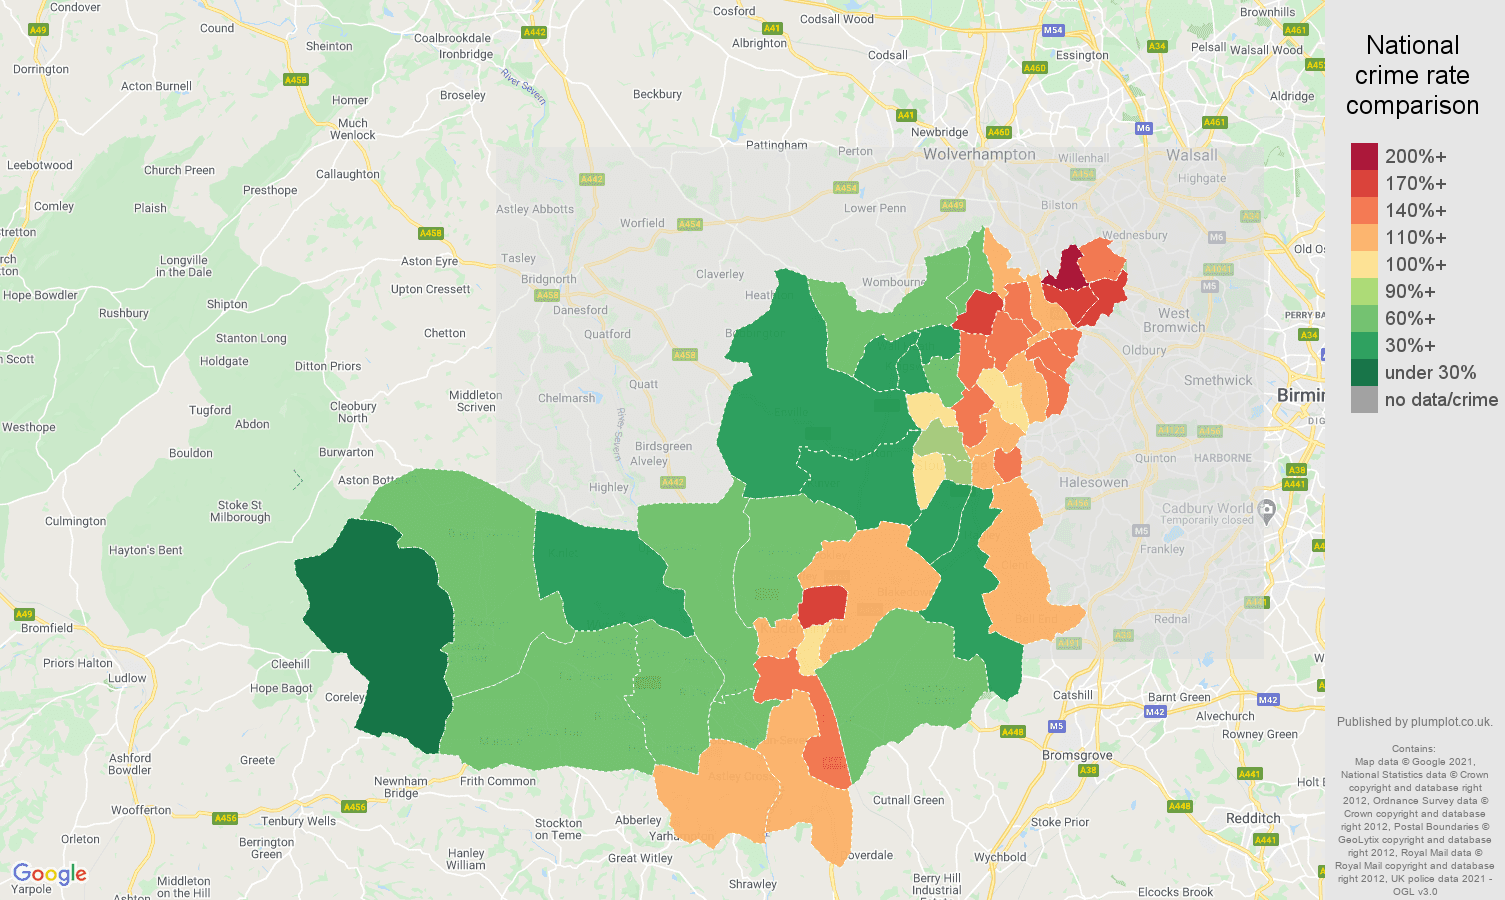 Dudley violent crime rate comparison map